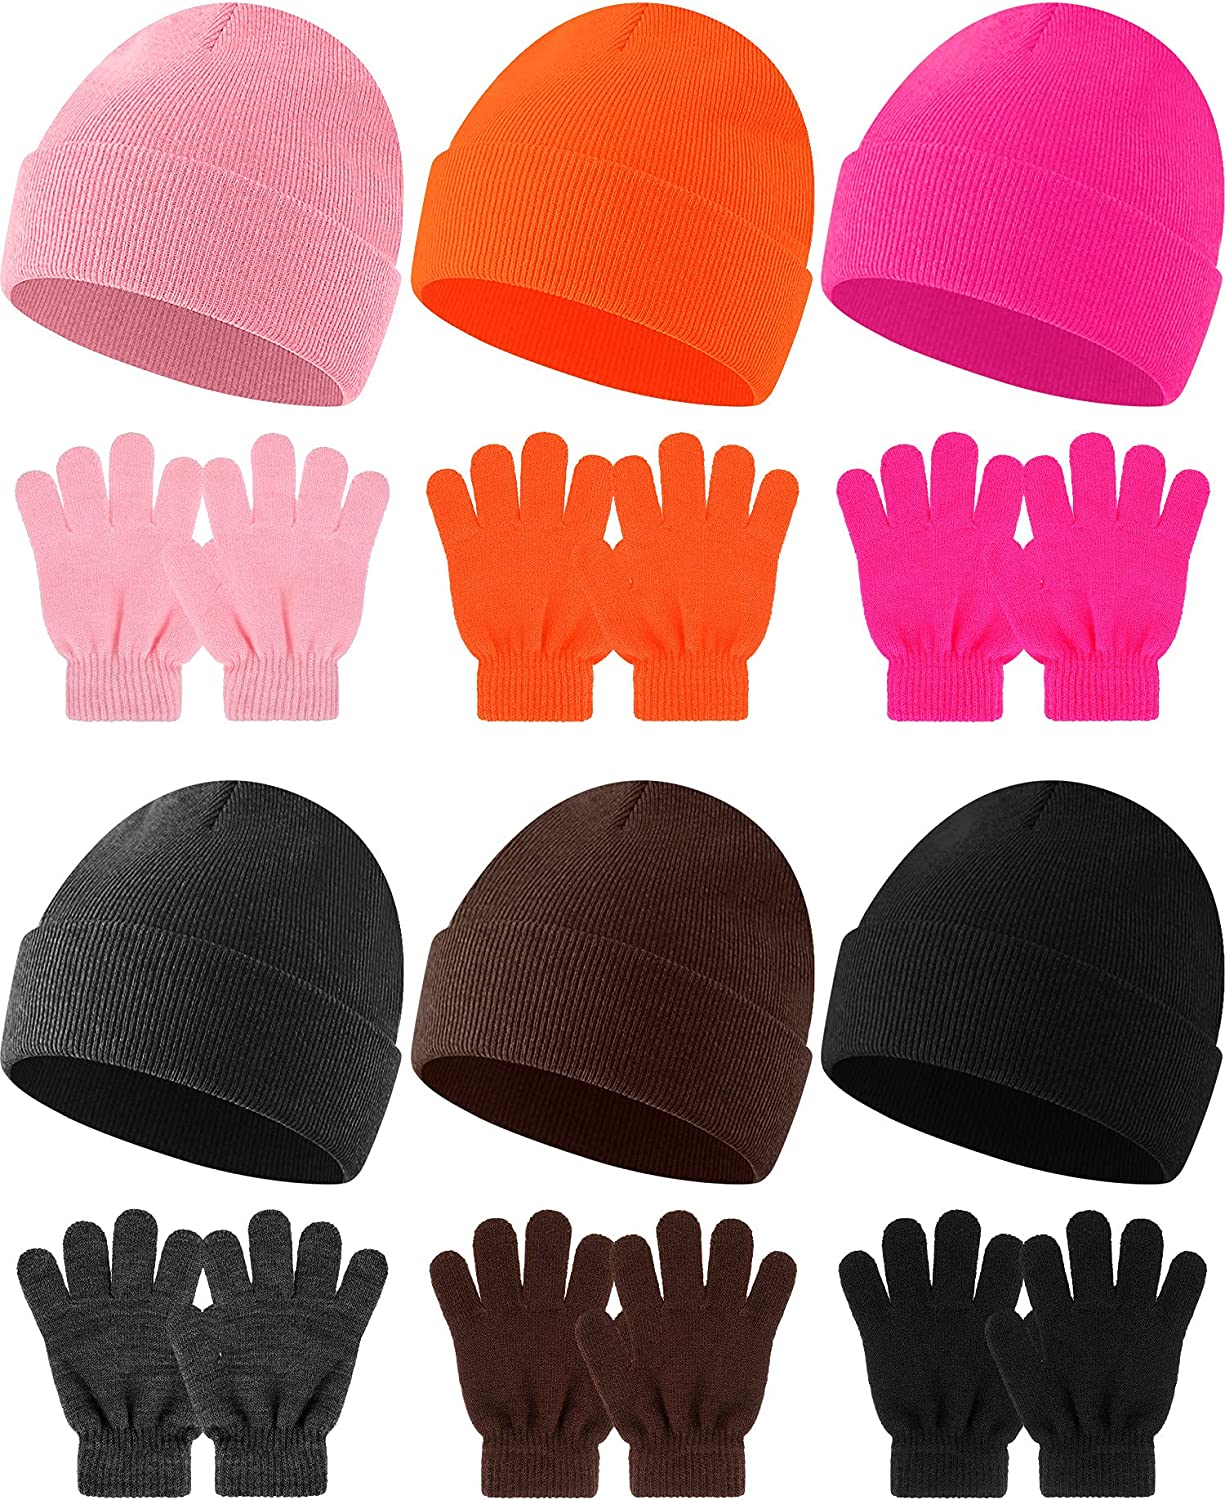 6 Sets Kids Winter Hats and Gloves Set Girls Boys Knit Beanie Hat Winter Warm Hats and Mittens Gloves Cold Weather Hats and Toddlers Mittens for Children Kids Babies